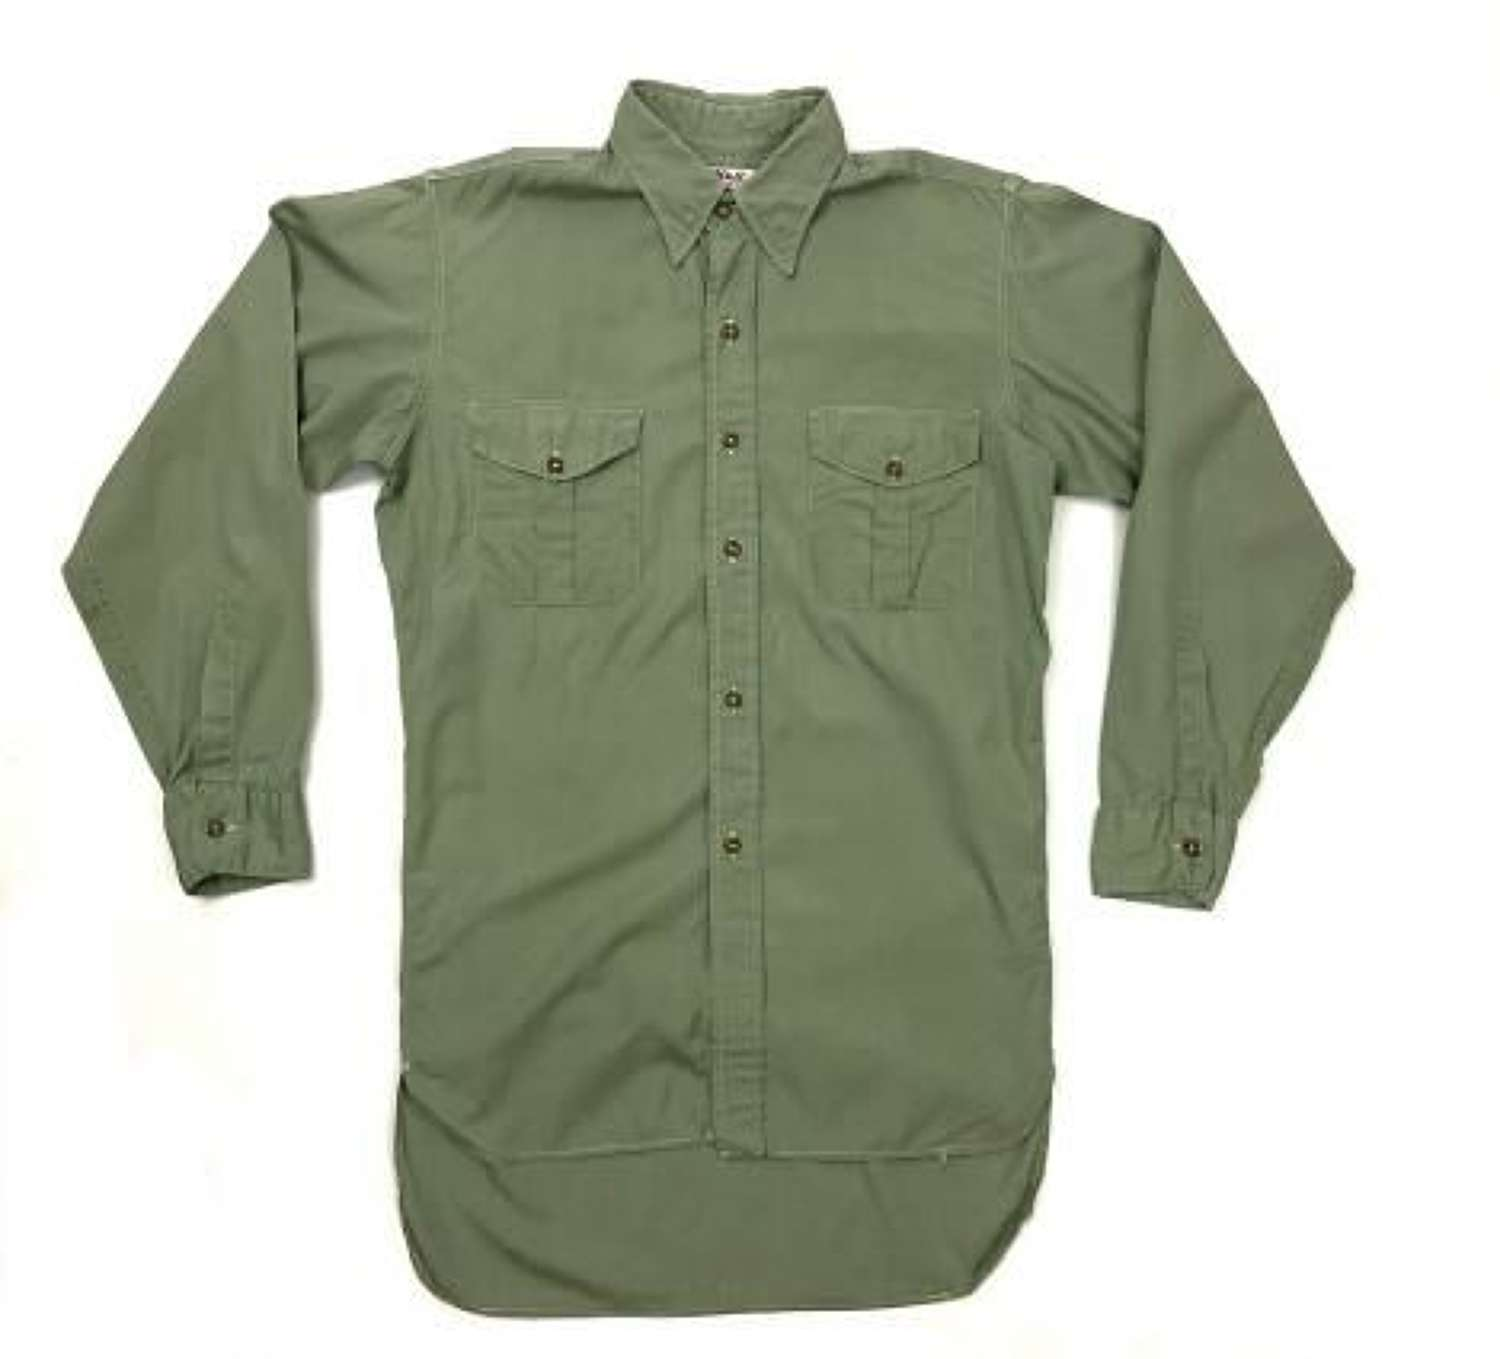 Original British Army Officers Shirt by 'Alkit'